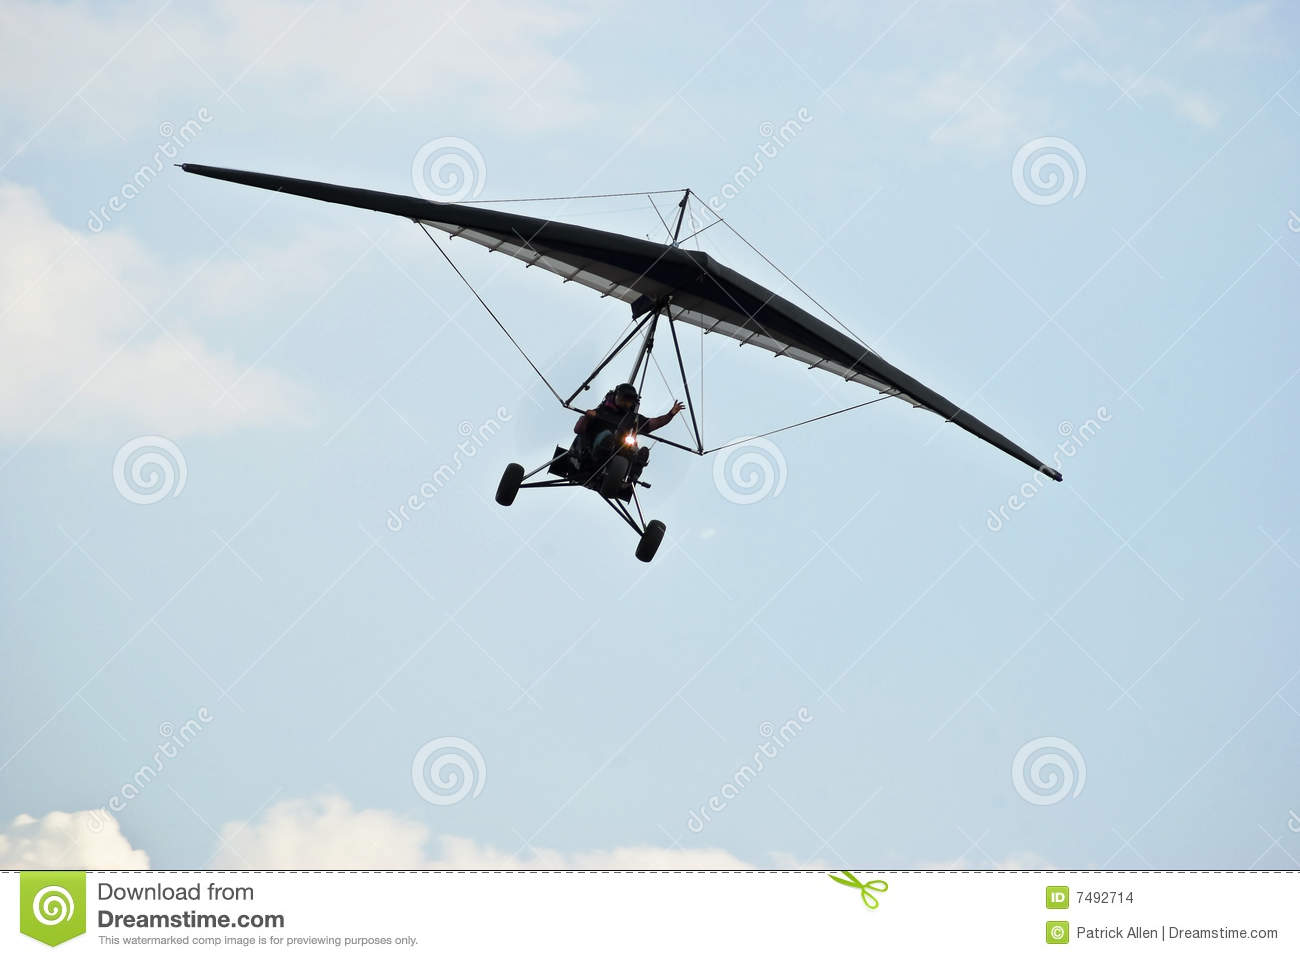 Motorized Hang Glider In Flight Stock Images.